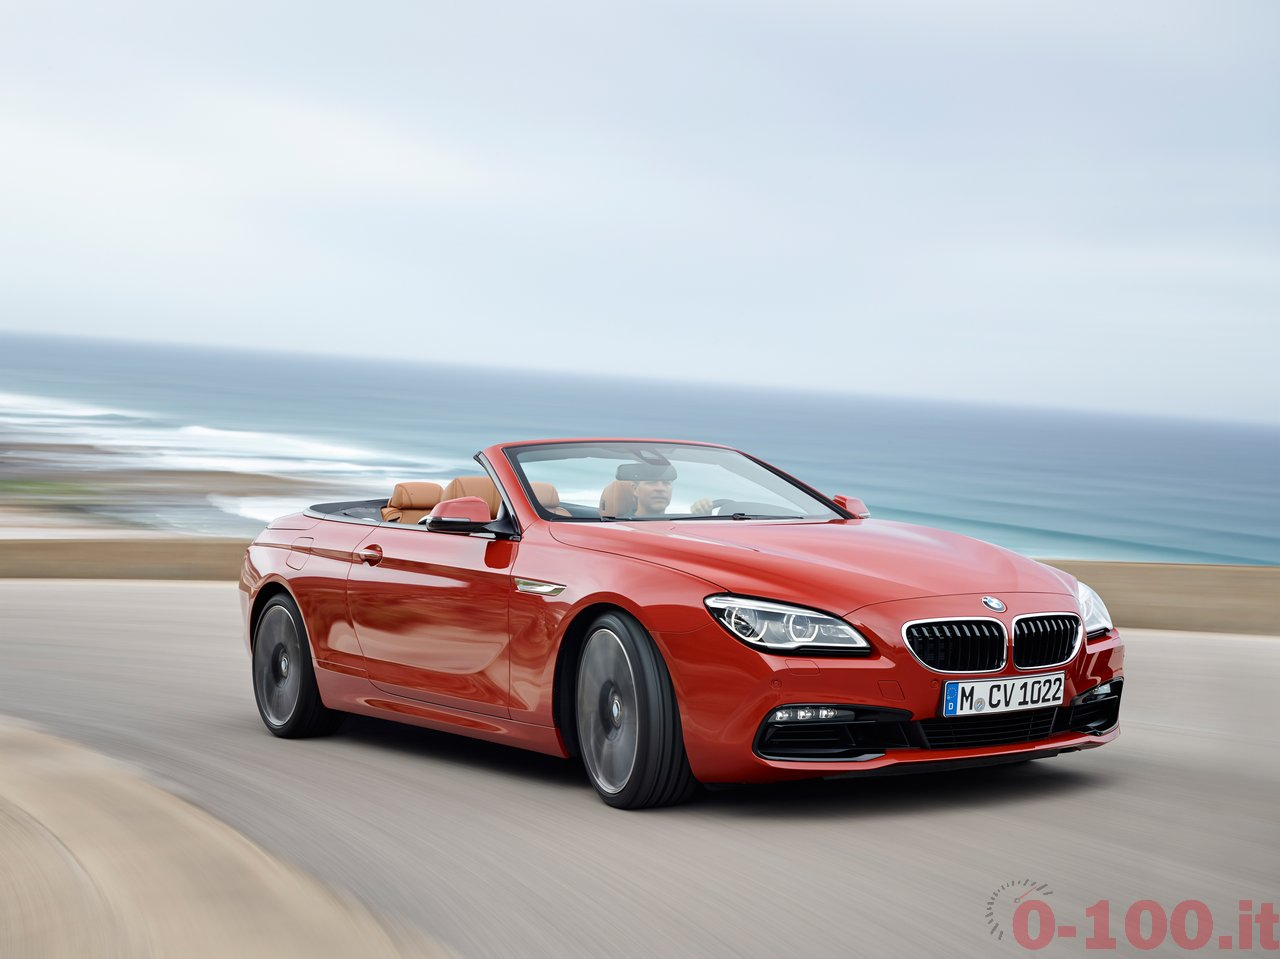 BMW-series-6-model-year-2015-gran-coupe-cabriolet-naias-detroit-0-100_29